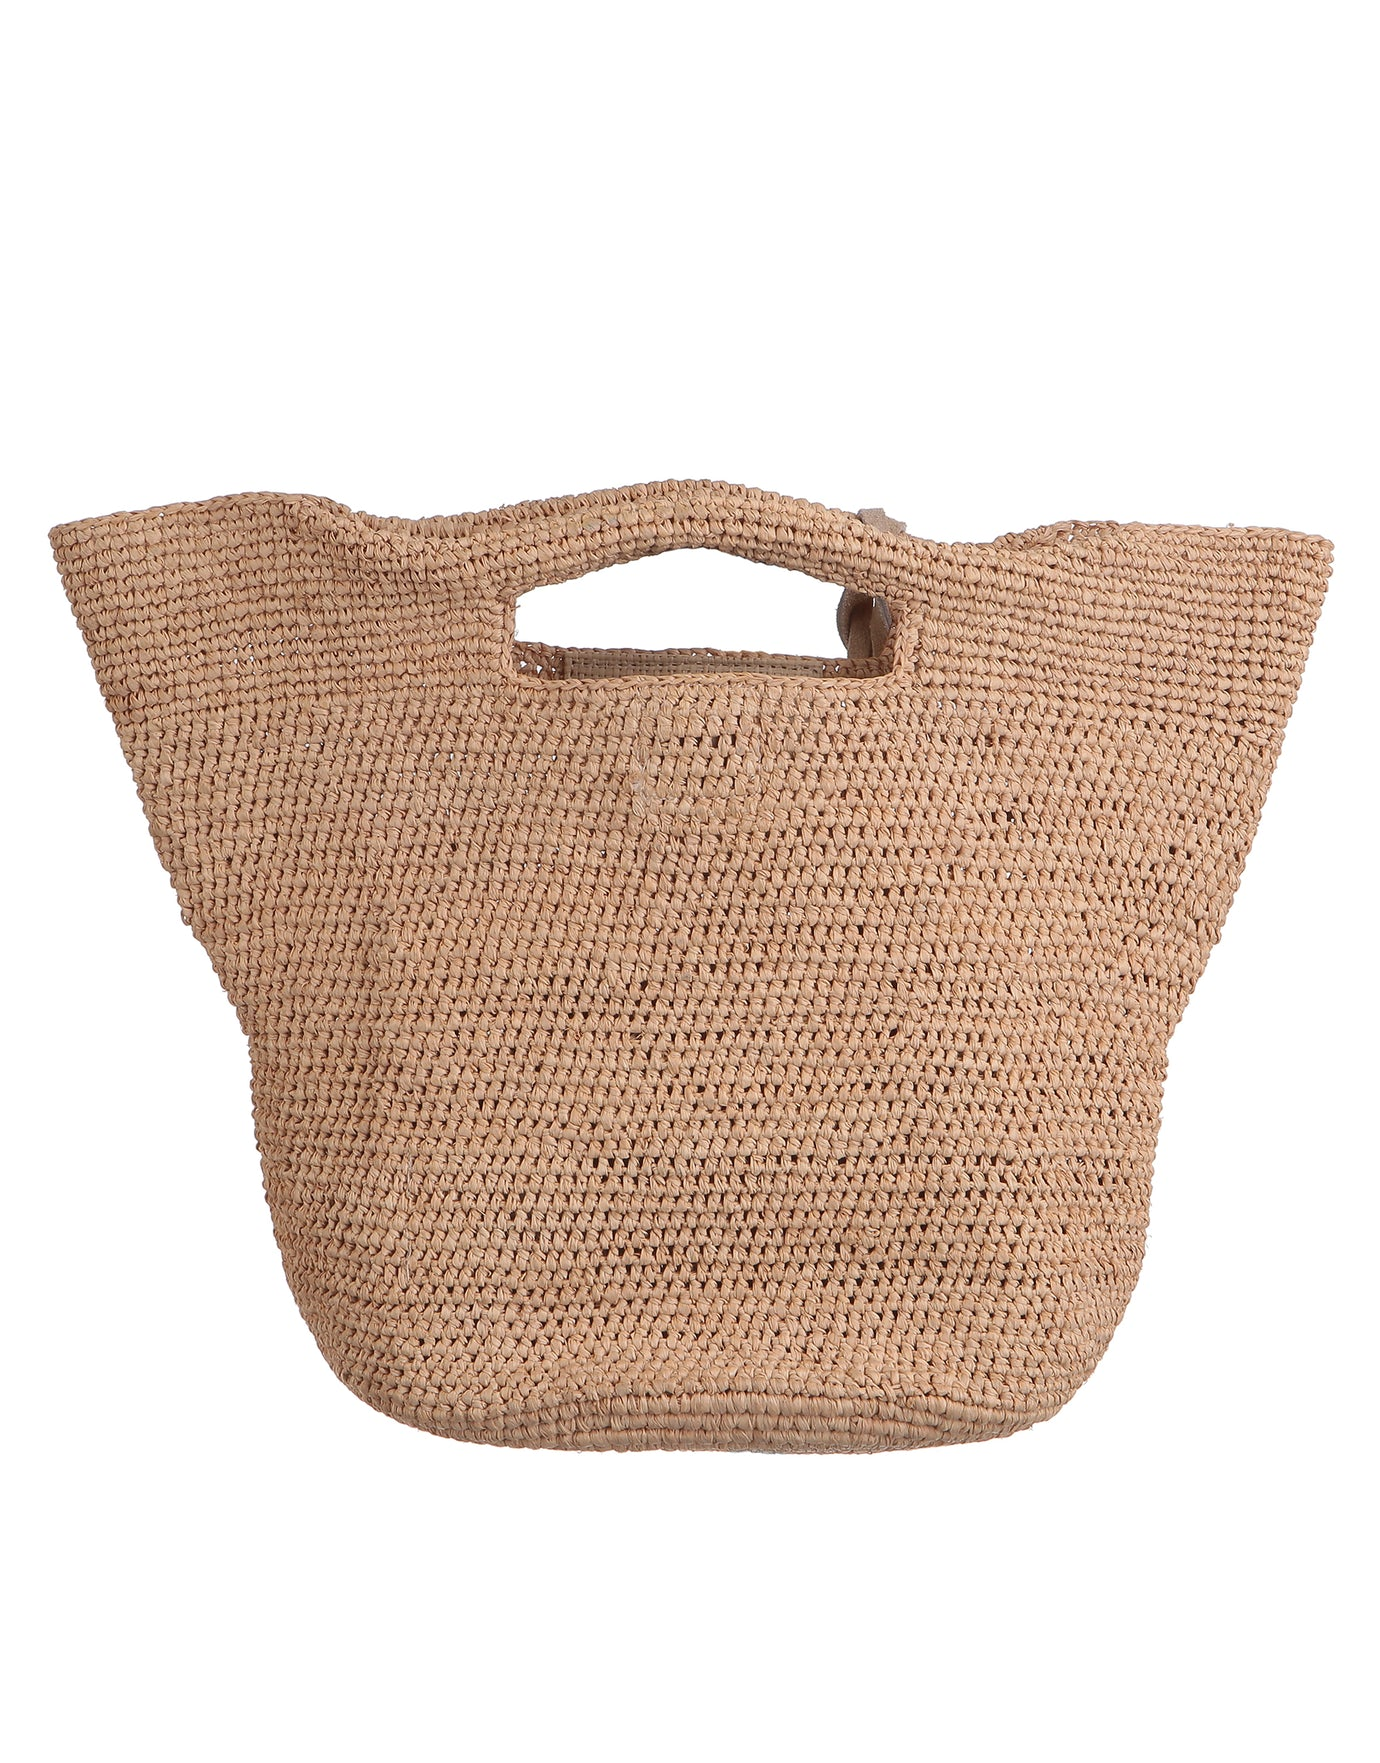 Heidi Klein Grace Bay Super Mini Raffia Bucket Bag - Natural